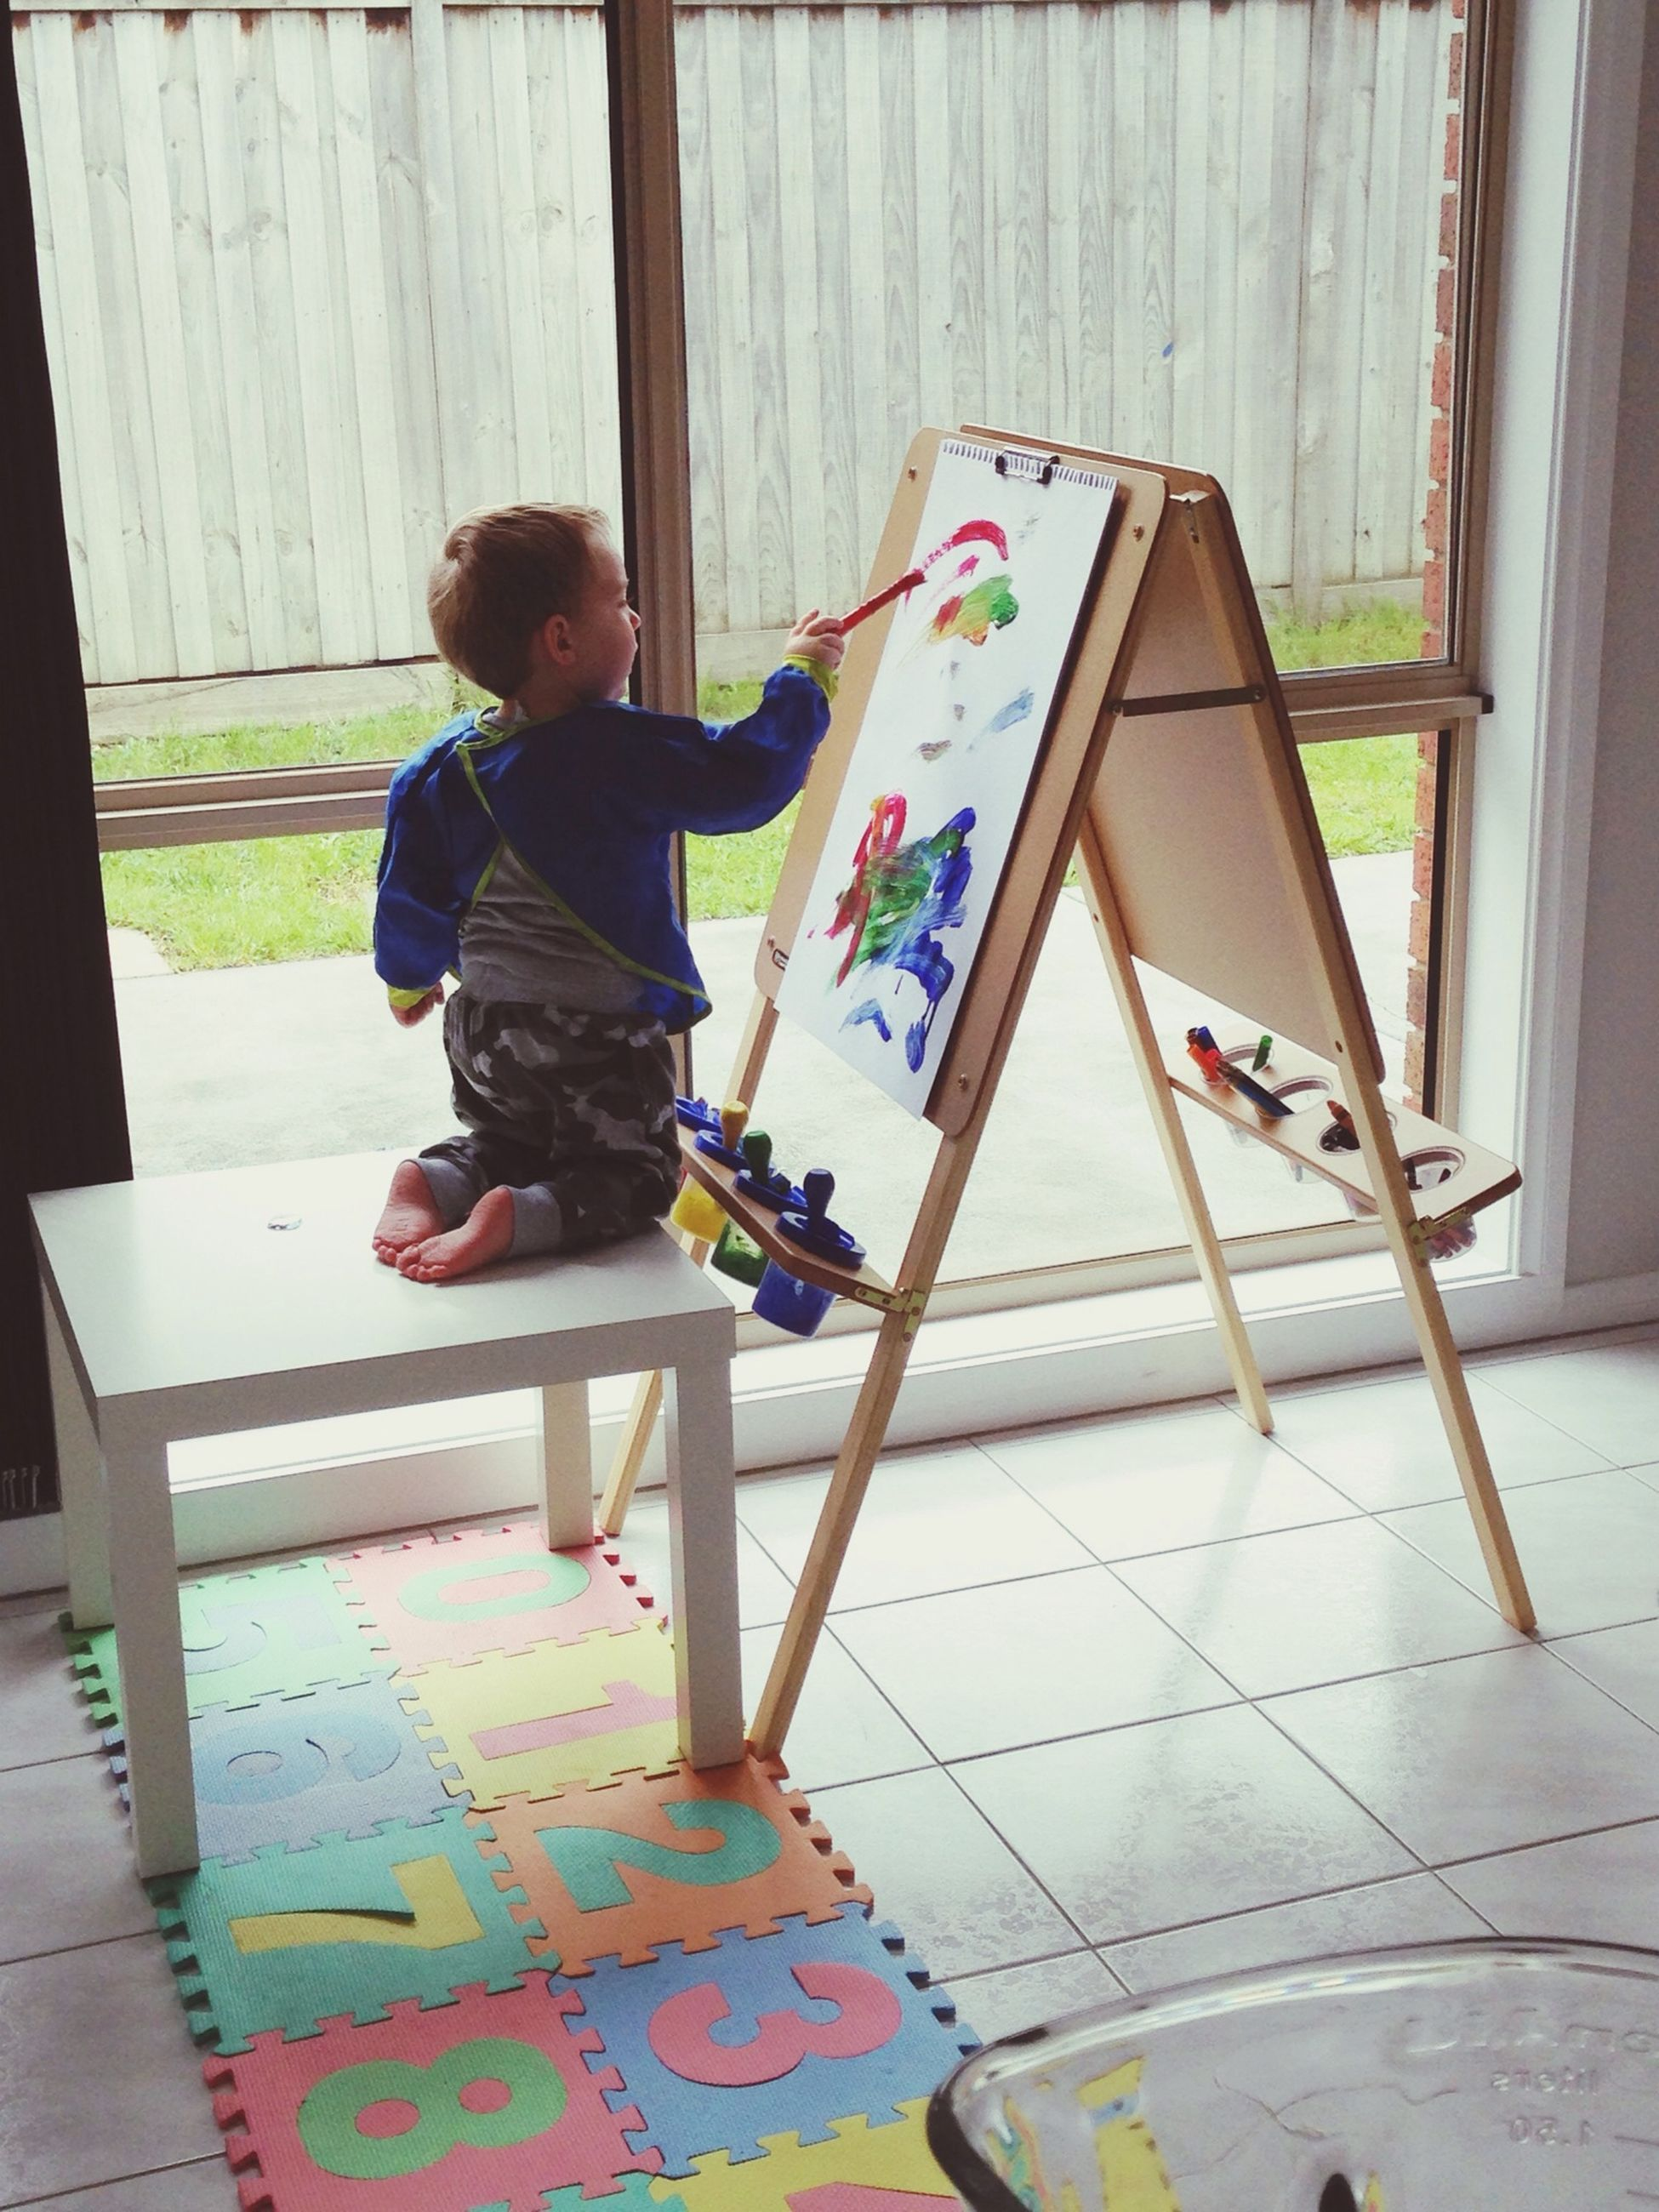 full length, lifestyles, leisure activity, casual clothing, childhood, sitting, chair, built structure, indoors, architecture, relaxation, boys, elementary age, day, wood - material, table, sunlight, person